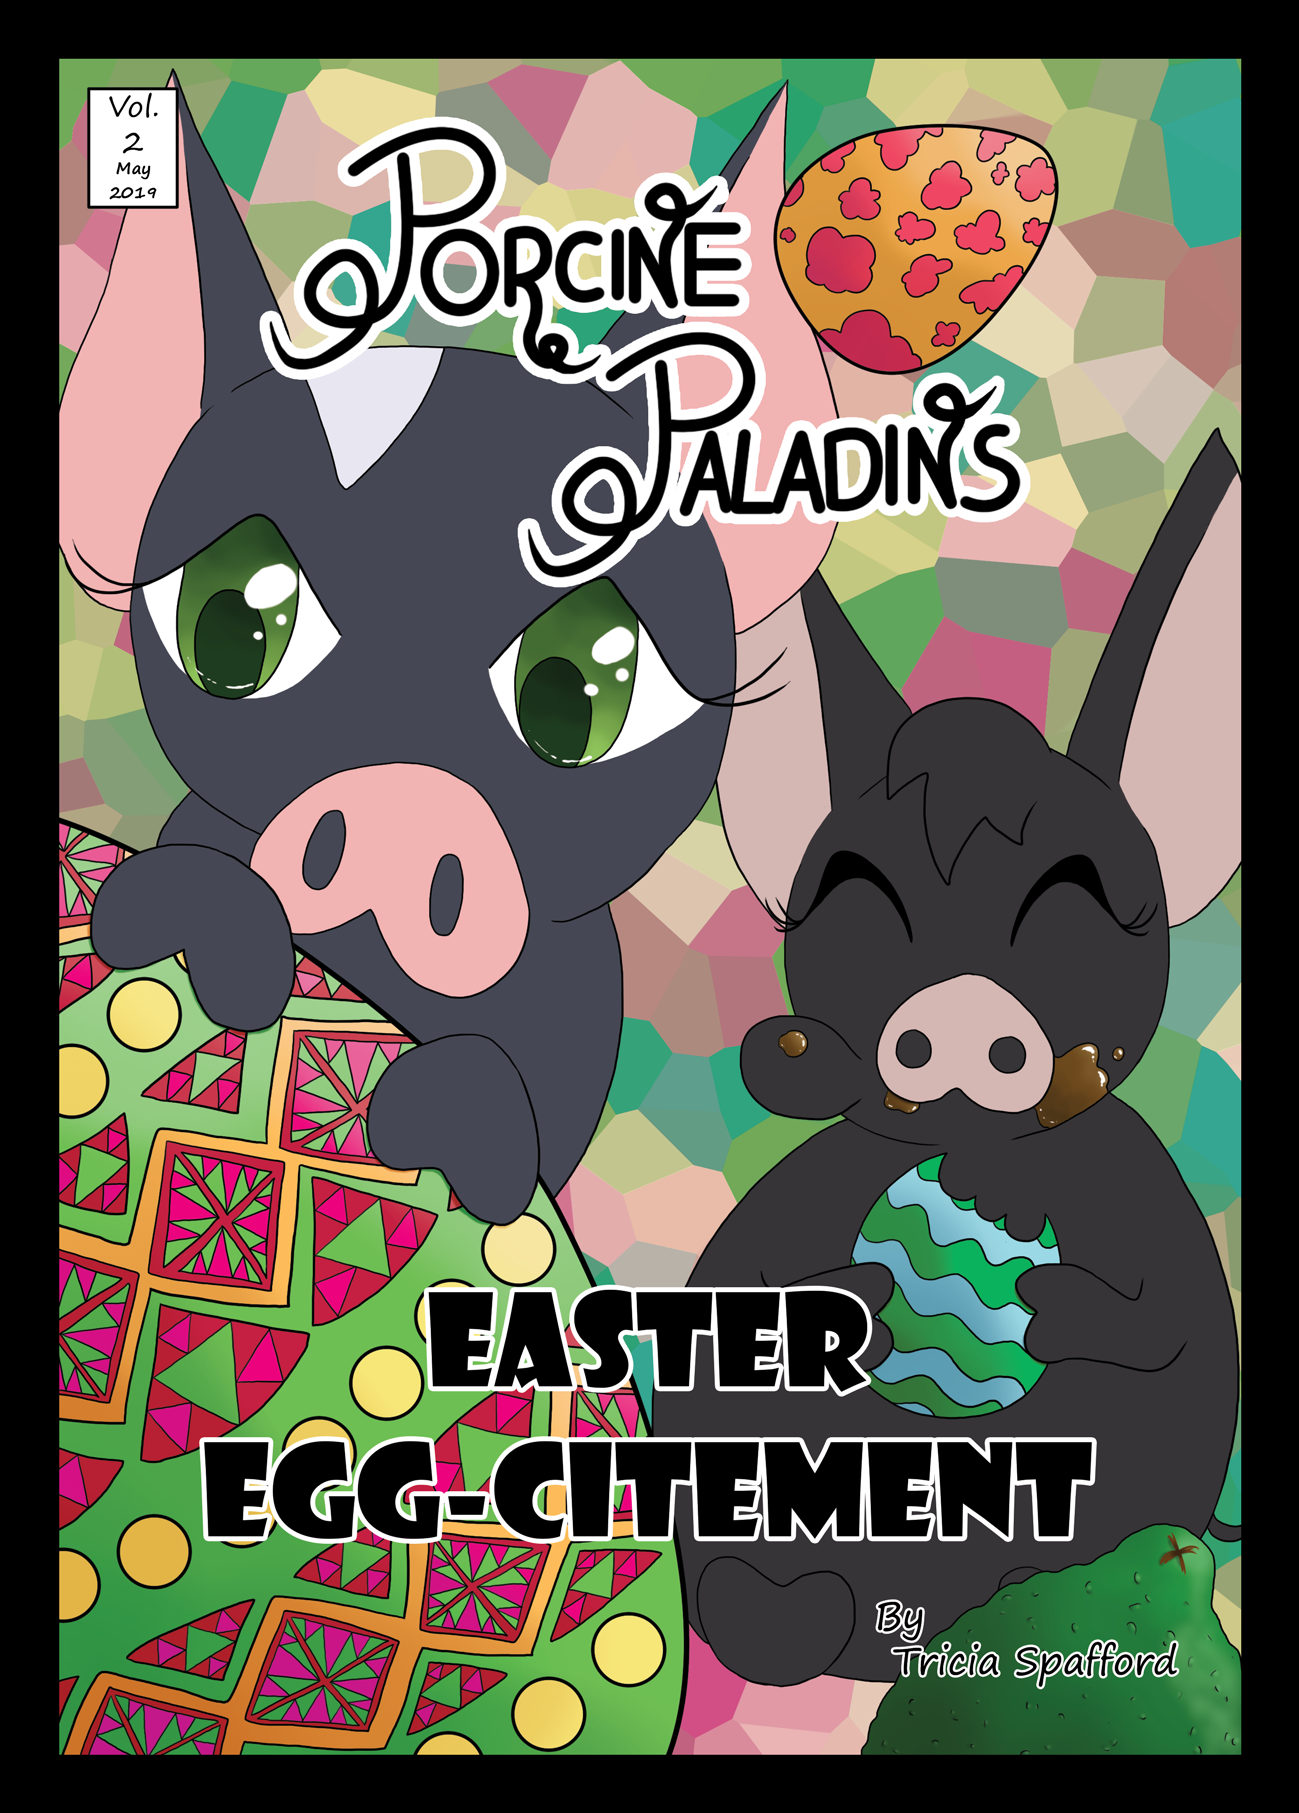 Volume 2 of the 'Porcine Paladins' comics features Tiny and Ariel as they uncover a delicious chocolate-y mystery happening right in their back yard.